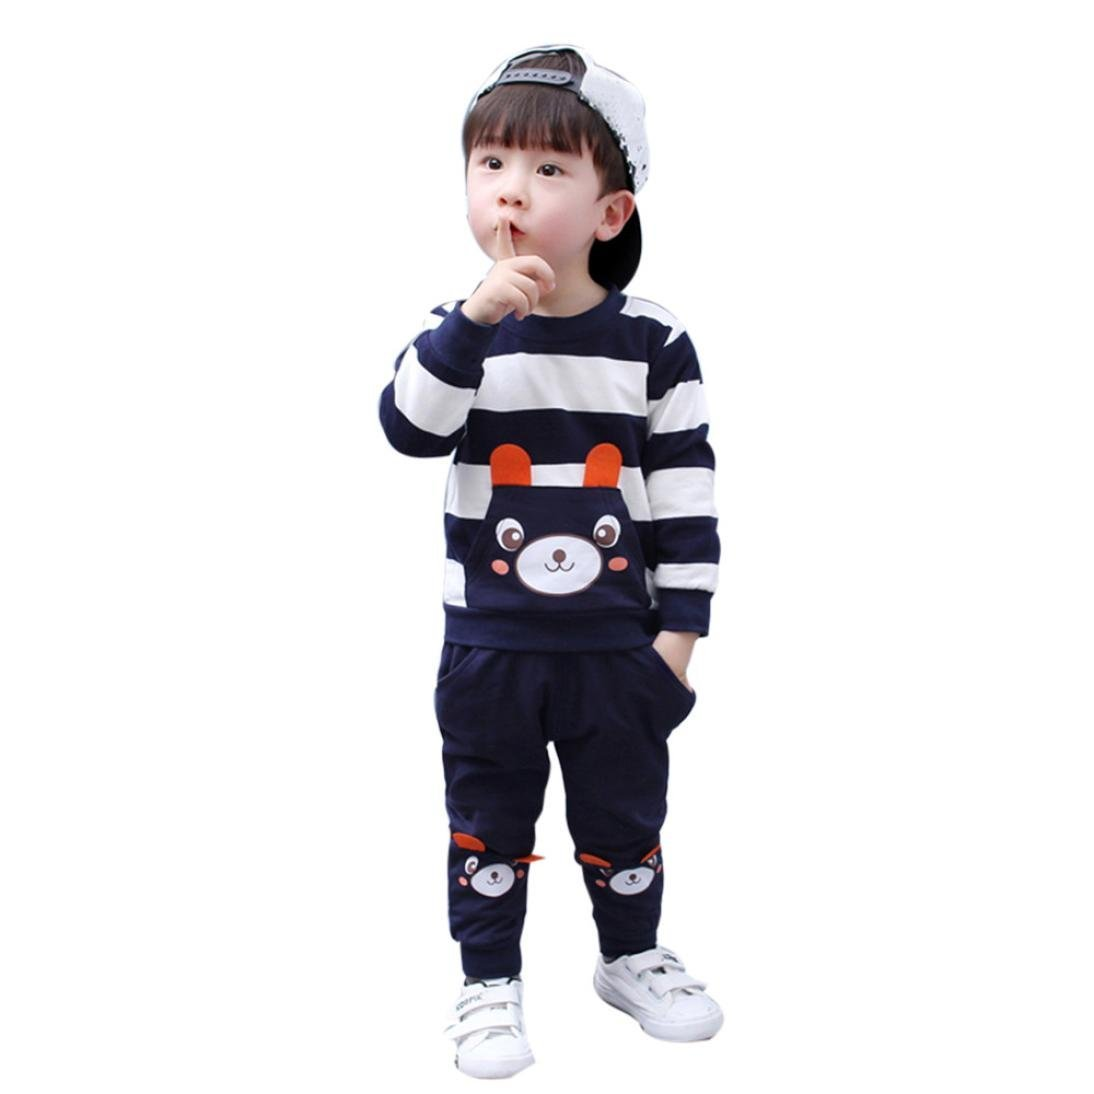 73b79b6c6 Get Quotations · ZLOLIA Baby Clothes Autumn Winter Cute Kids Girl Boy Set  Striped Bear Tops Pants Outfits (